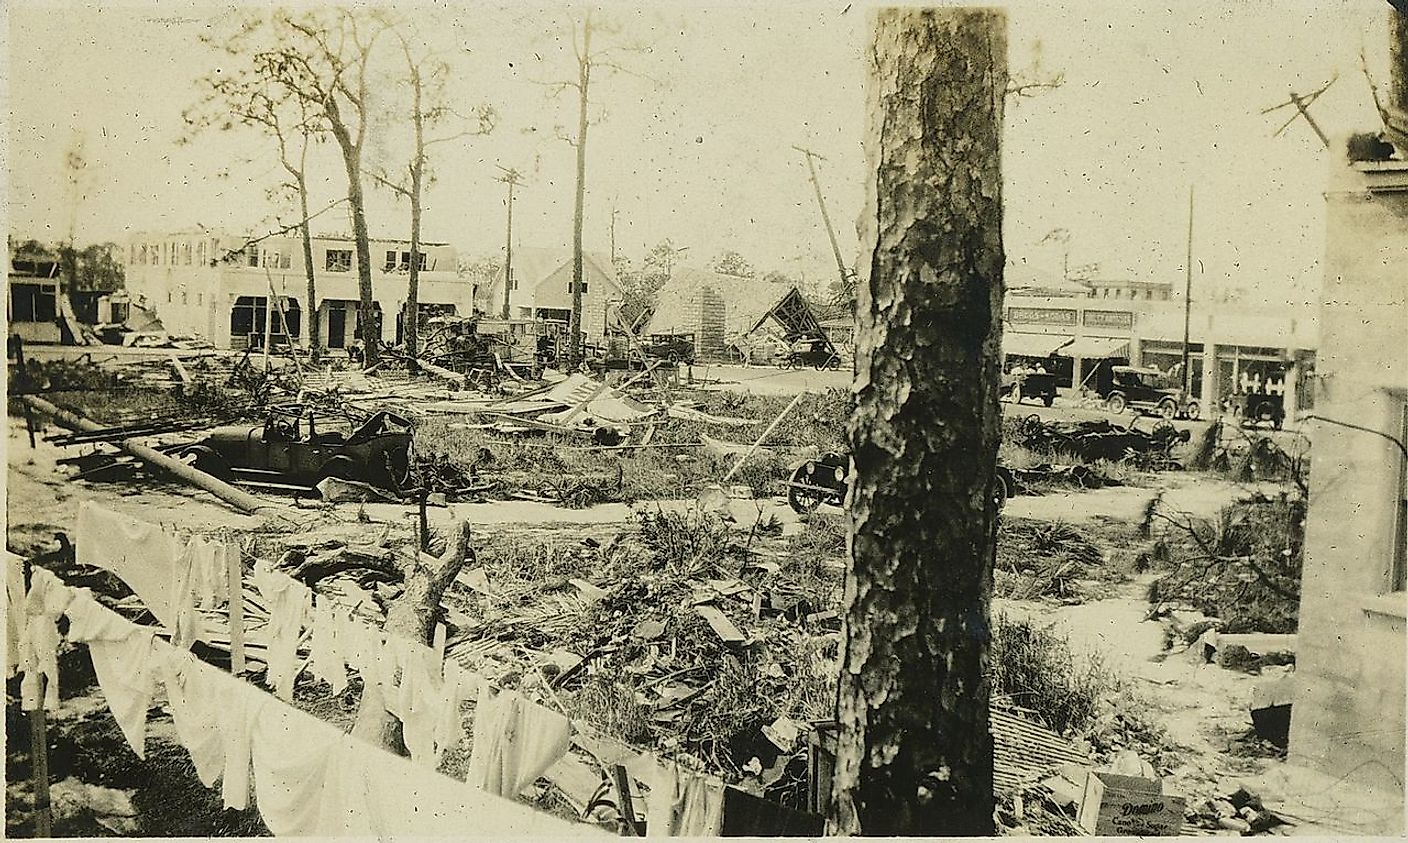 Damage in Florida in the aftermath of the 1928 Okeechobee hurricane. Image credit: Roy Senff (1890-1963)/Public domain